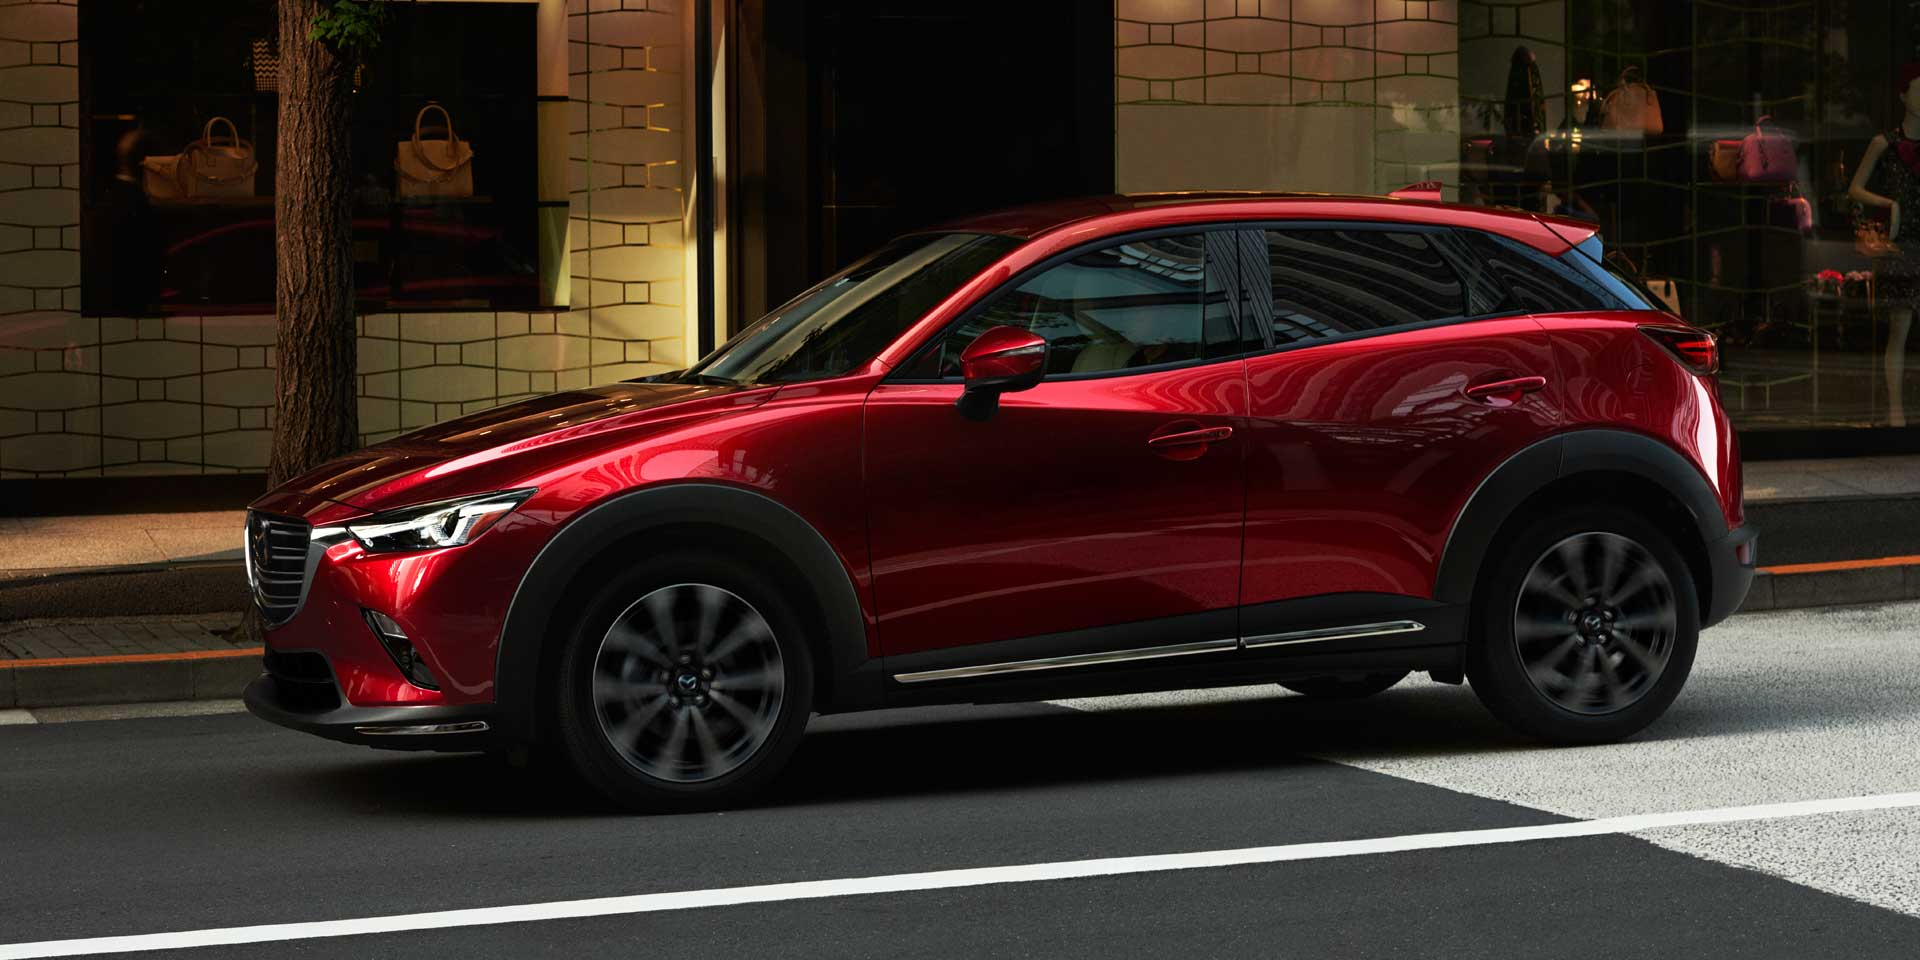 2019 mazda cx 3 vehicles on display chicago auto show. Black Bedroom Furniture Sets. Home Design Ideas